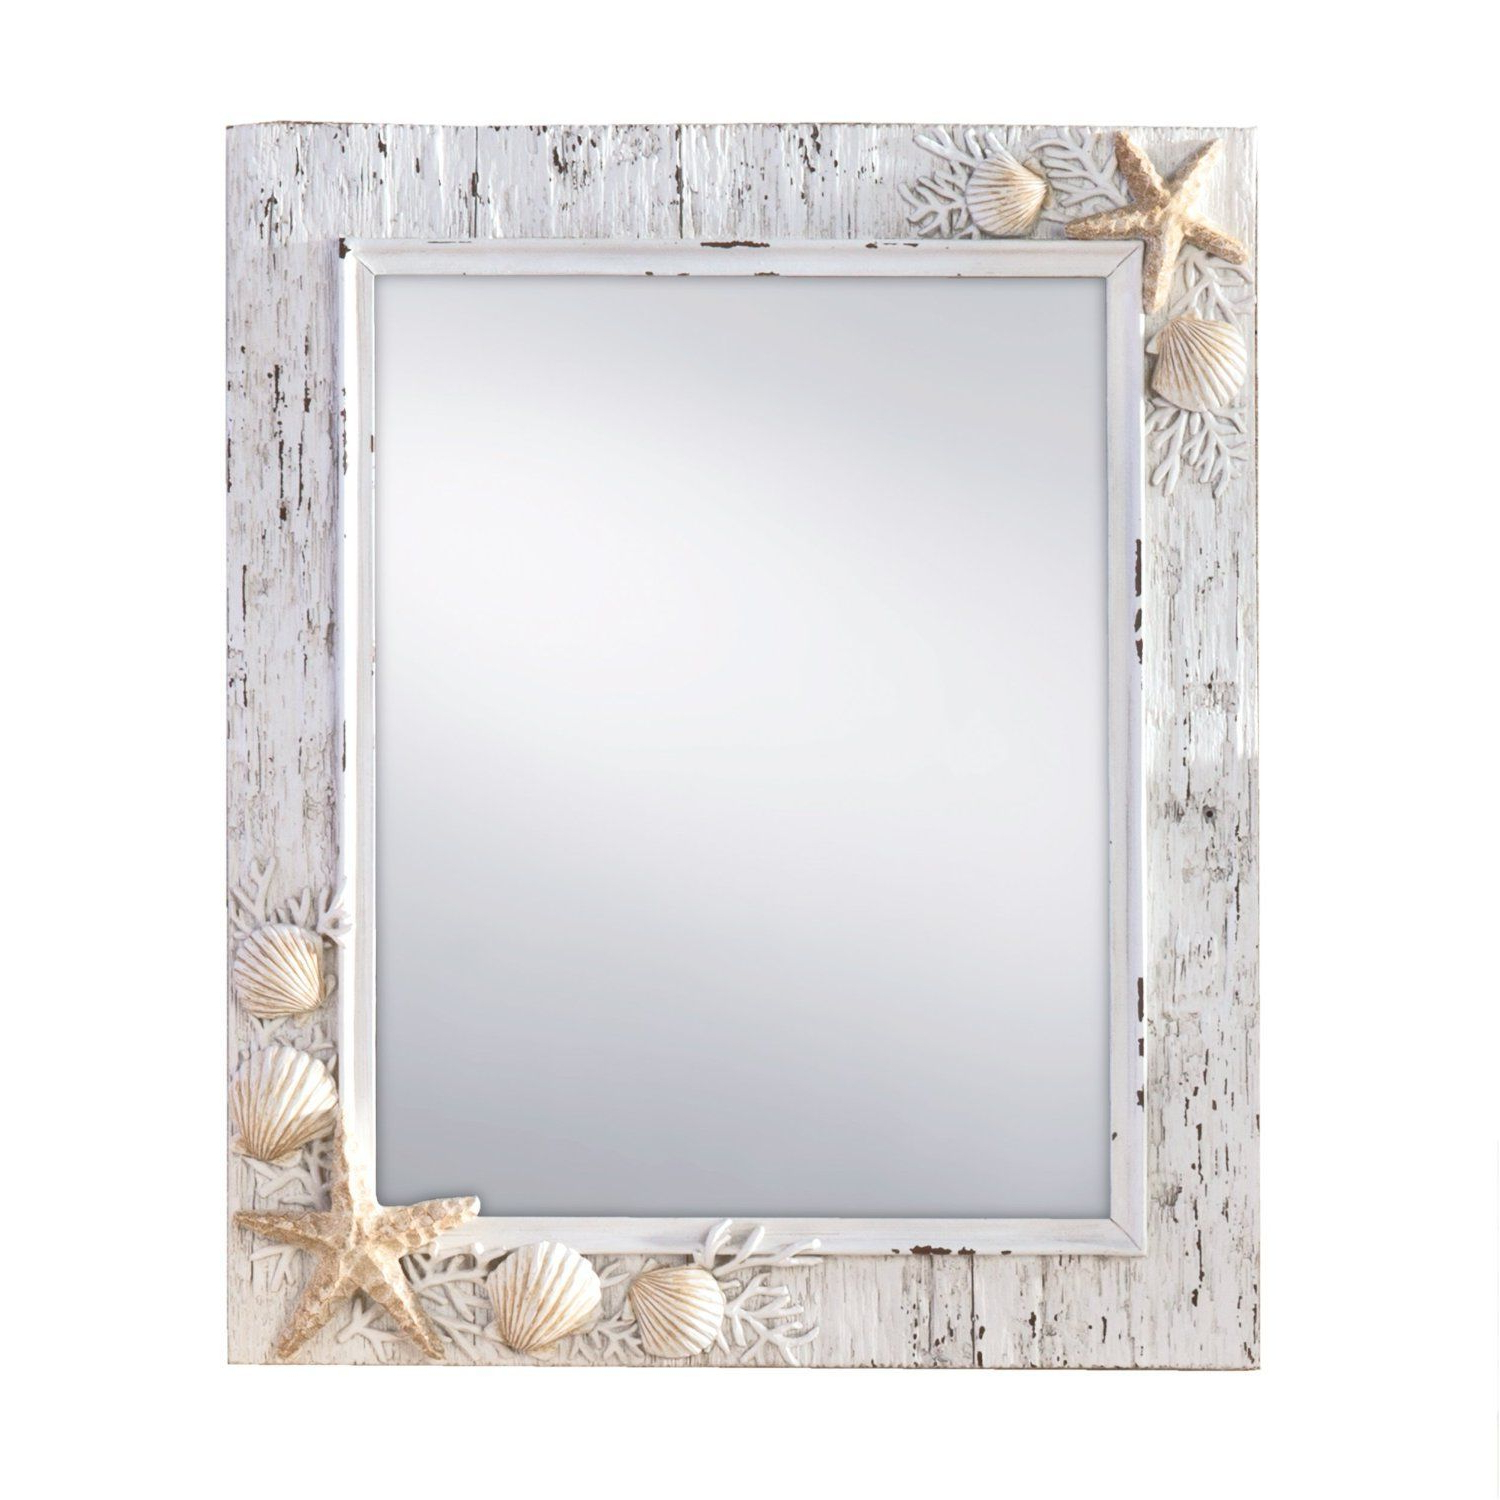 Janie Rectangular Wall Mirrors Throughout Favorite Beach Themed Mirrors! Discover The Best Beach Mirrors For Your Wall (Gallery 10 of 20)